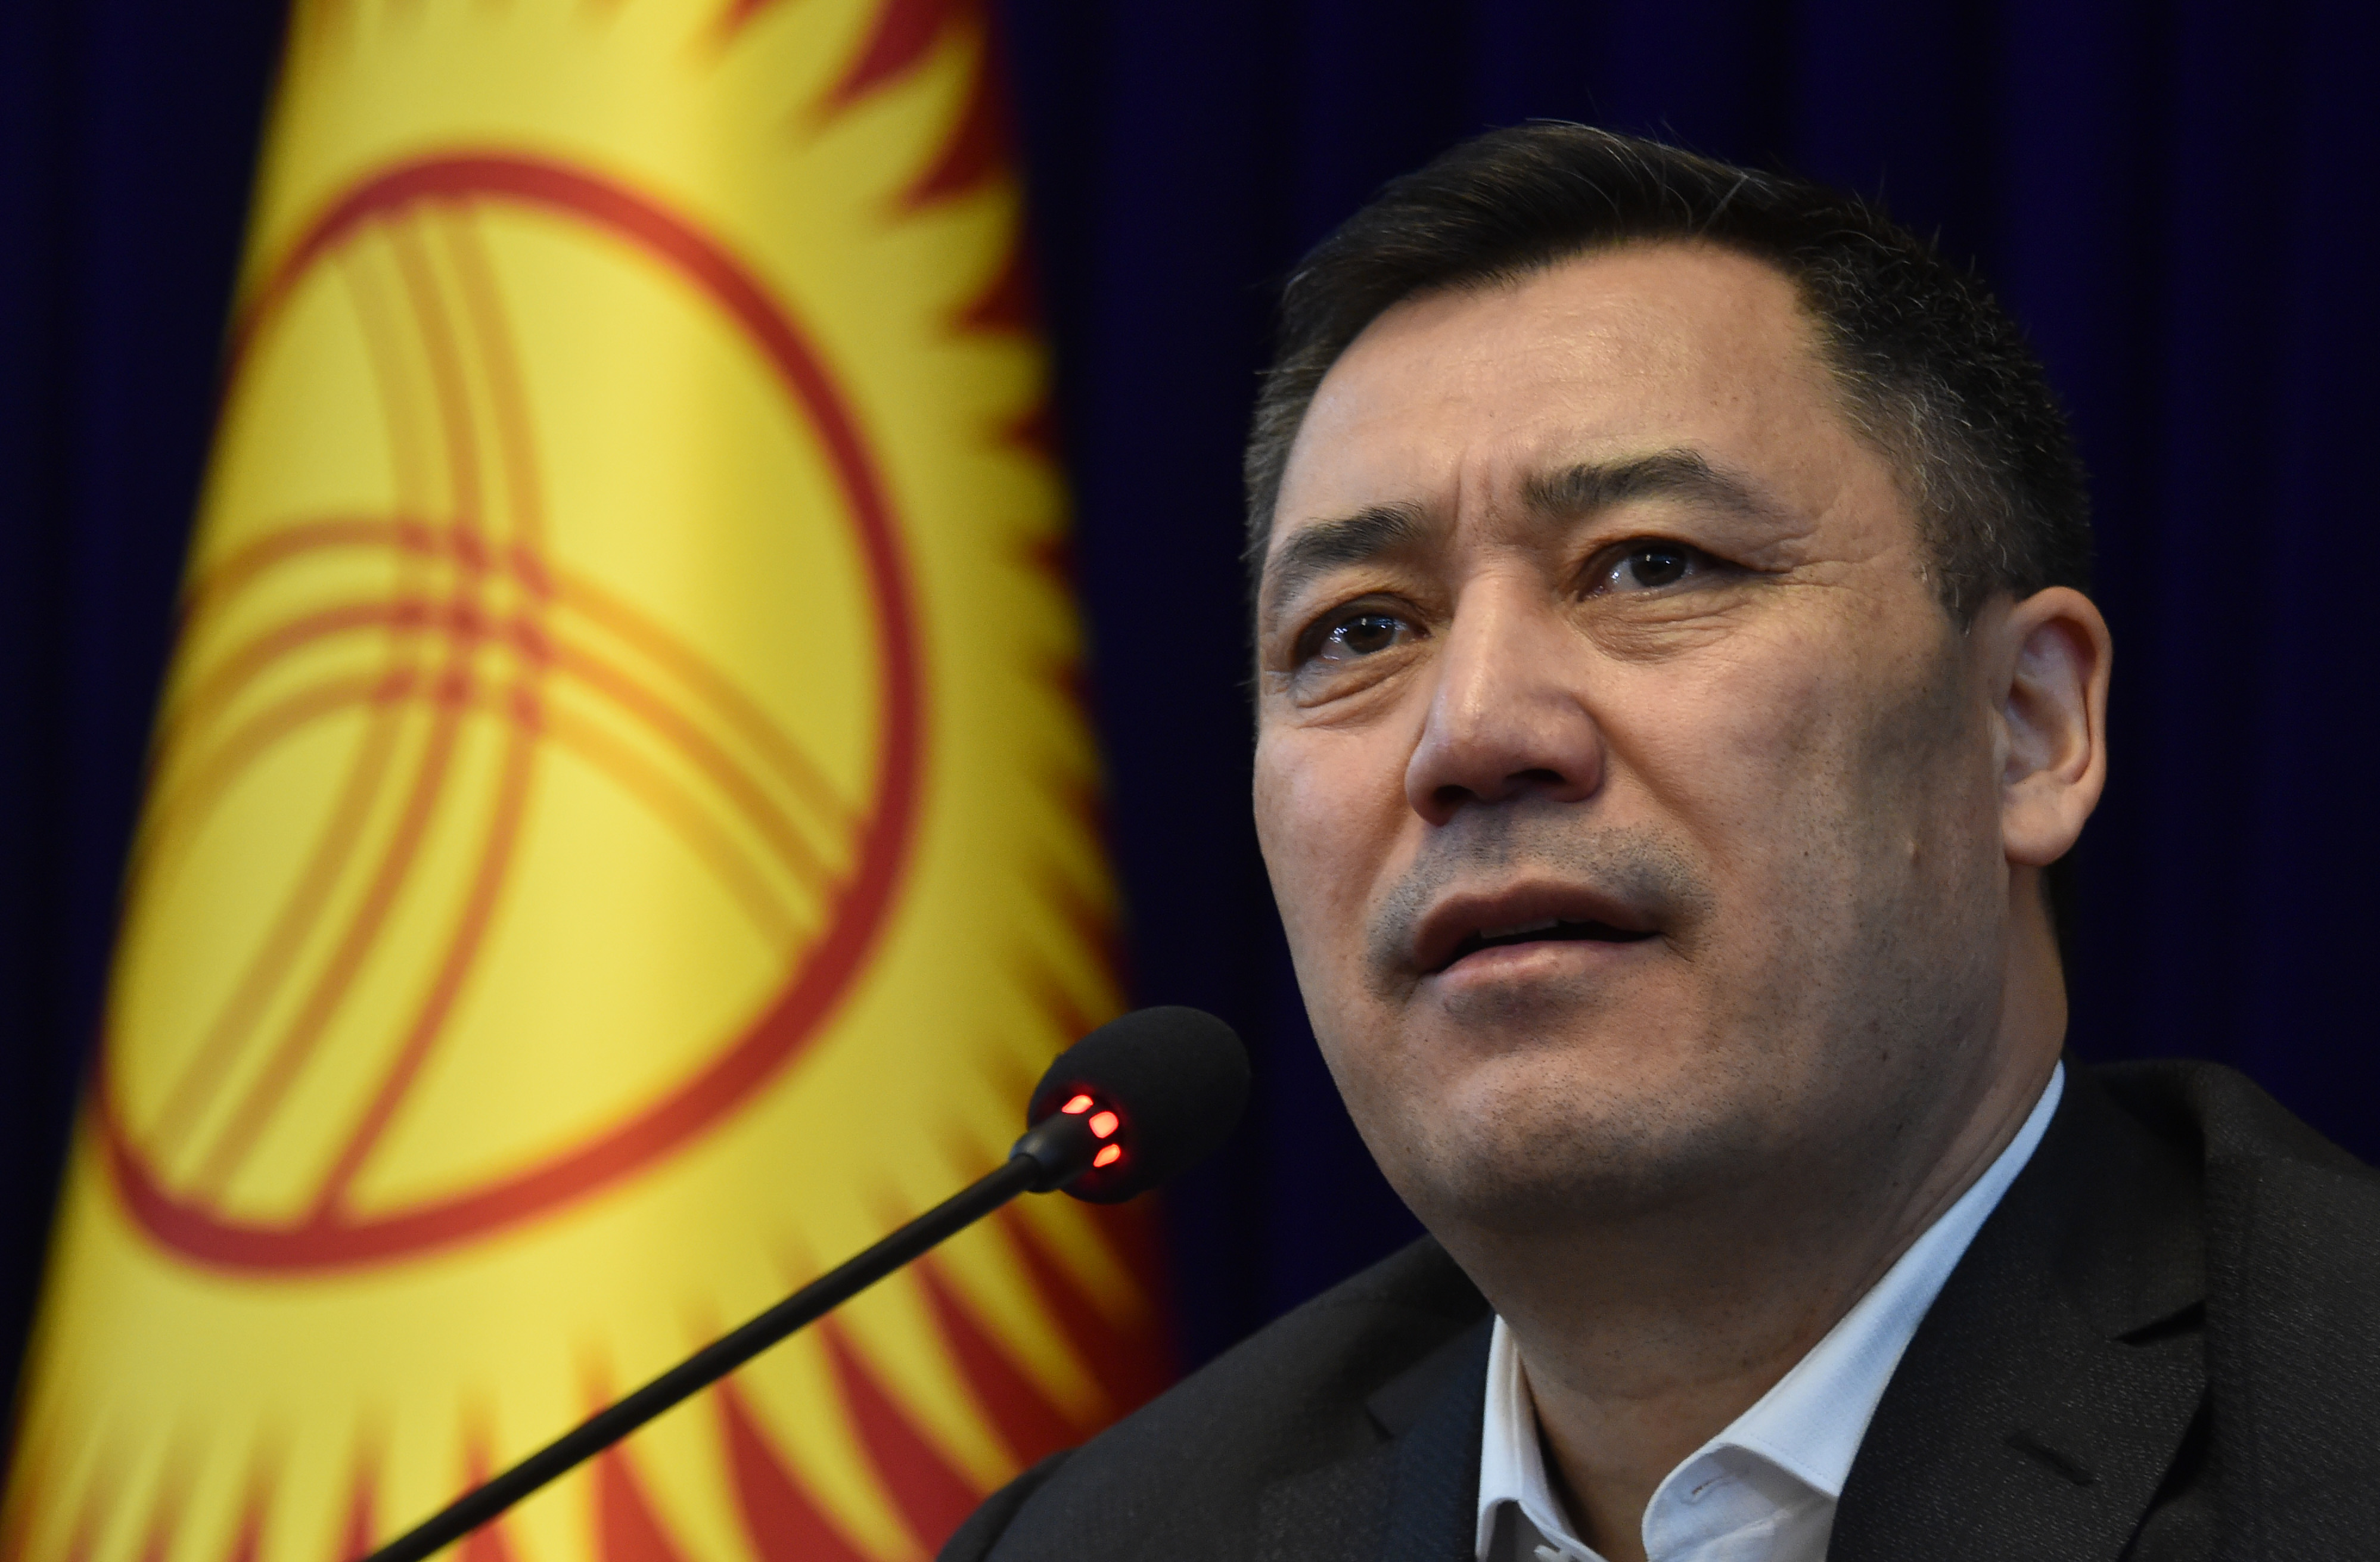 Kyrgyzstan president faces pressure to resign amid turmoil